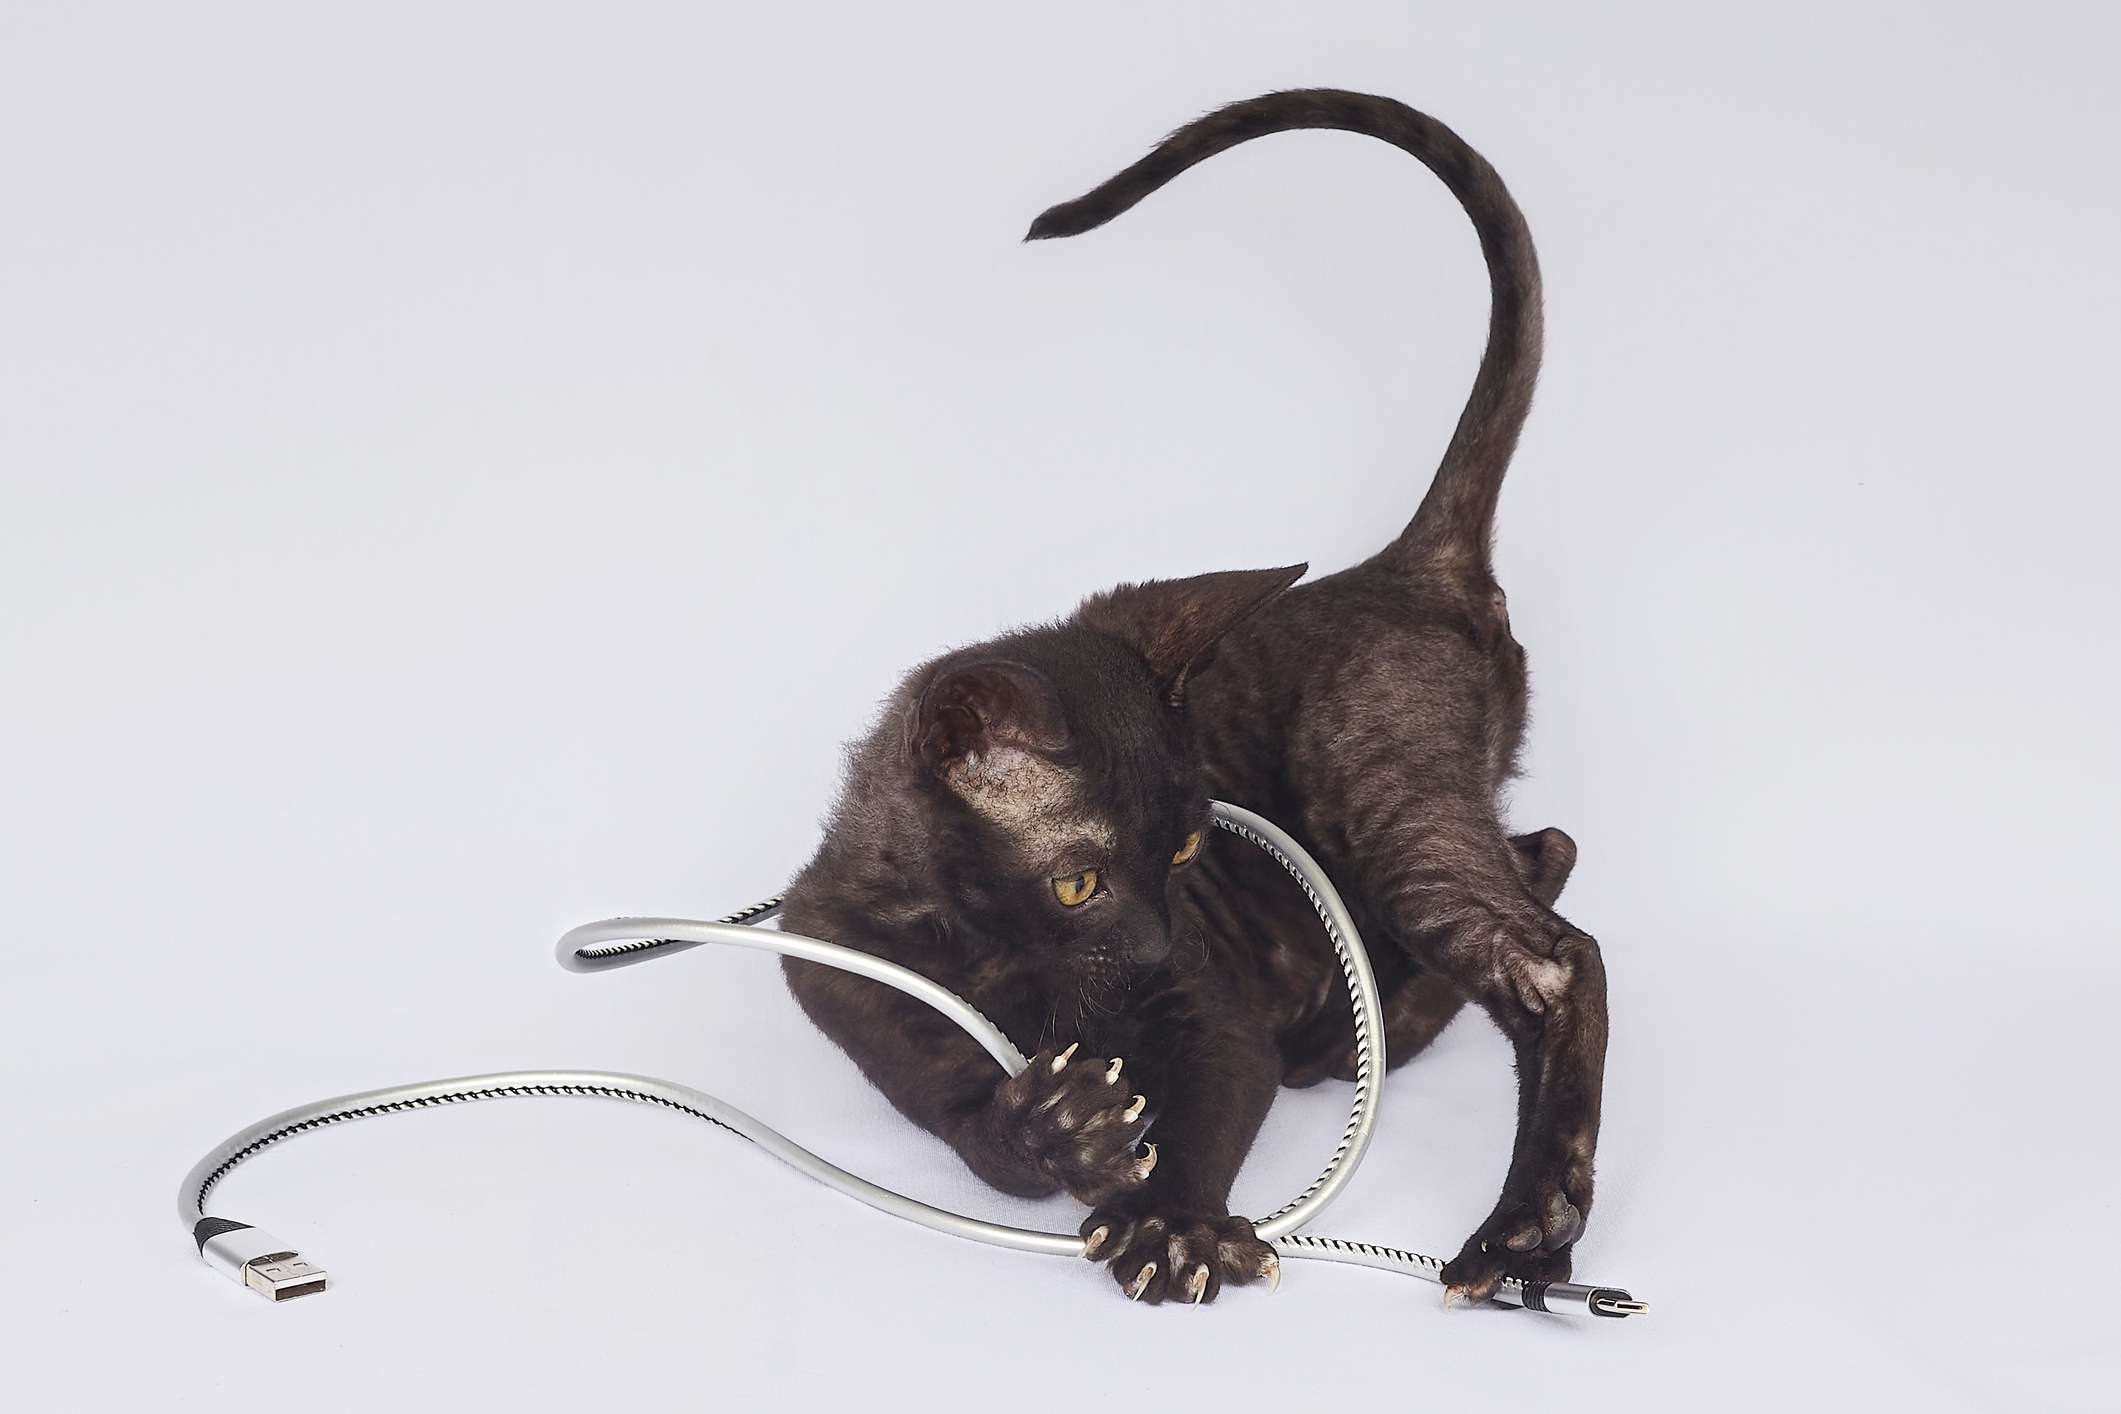 Black, Cornish Rex kitten playing with a USB-C cable.